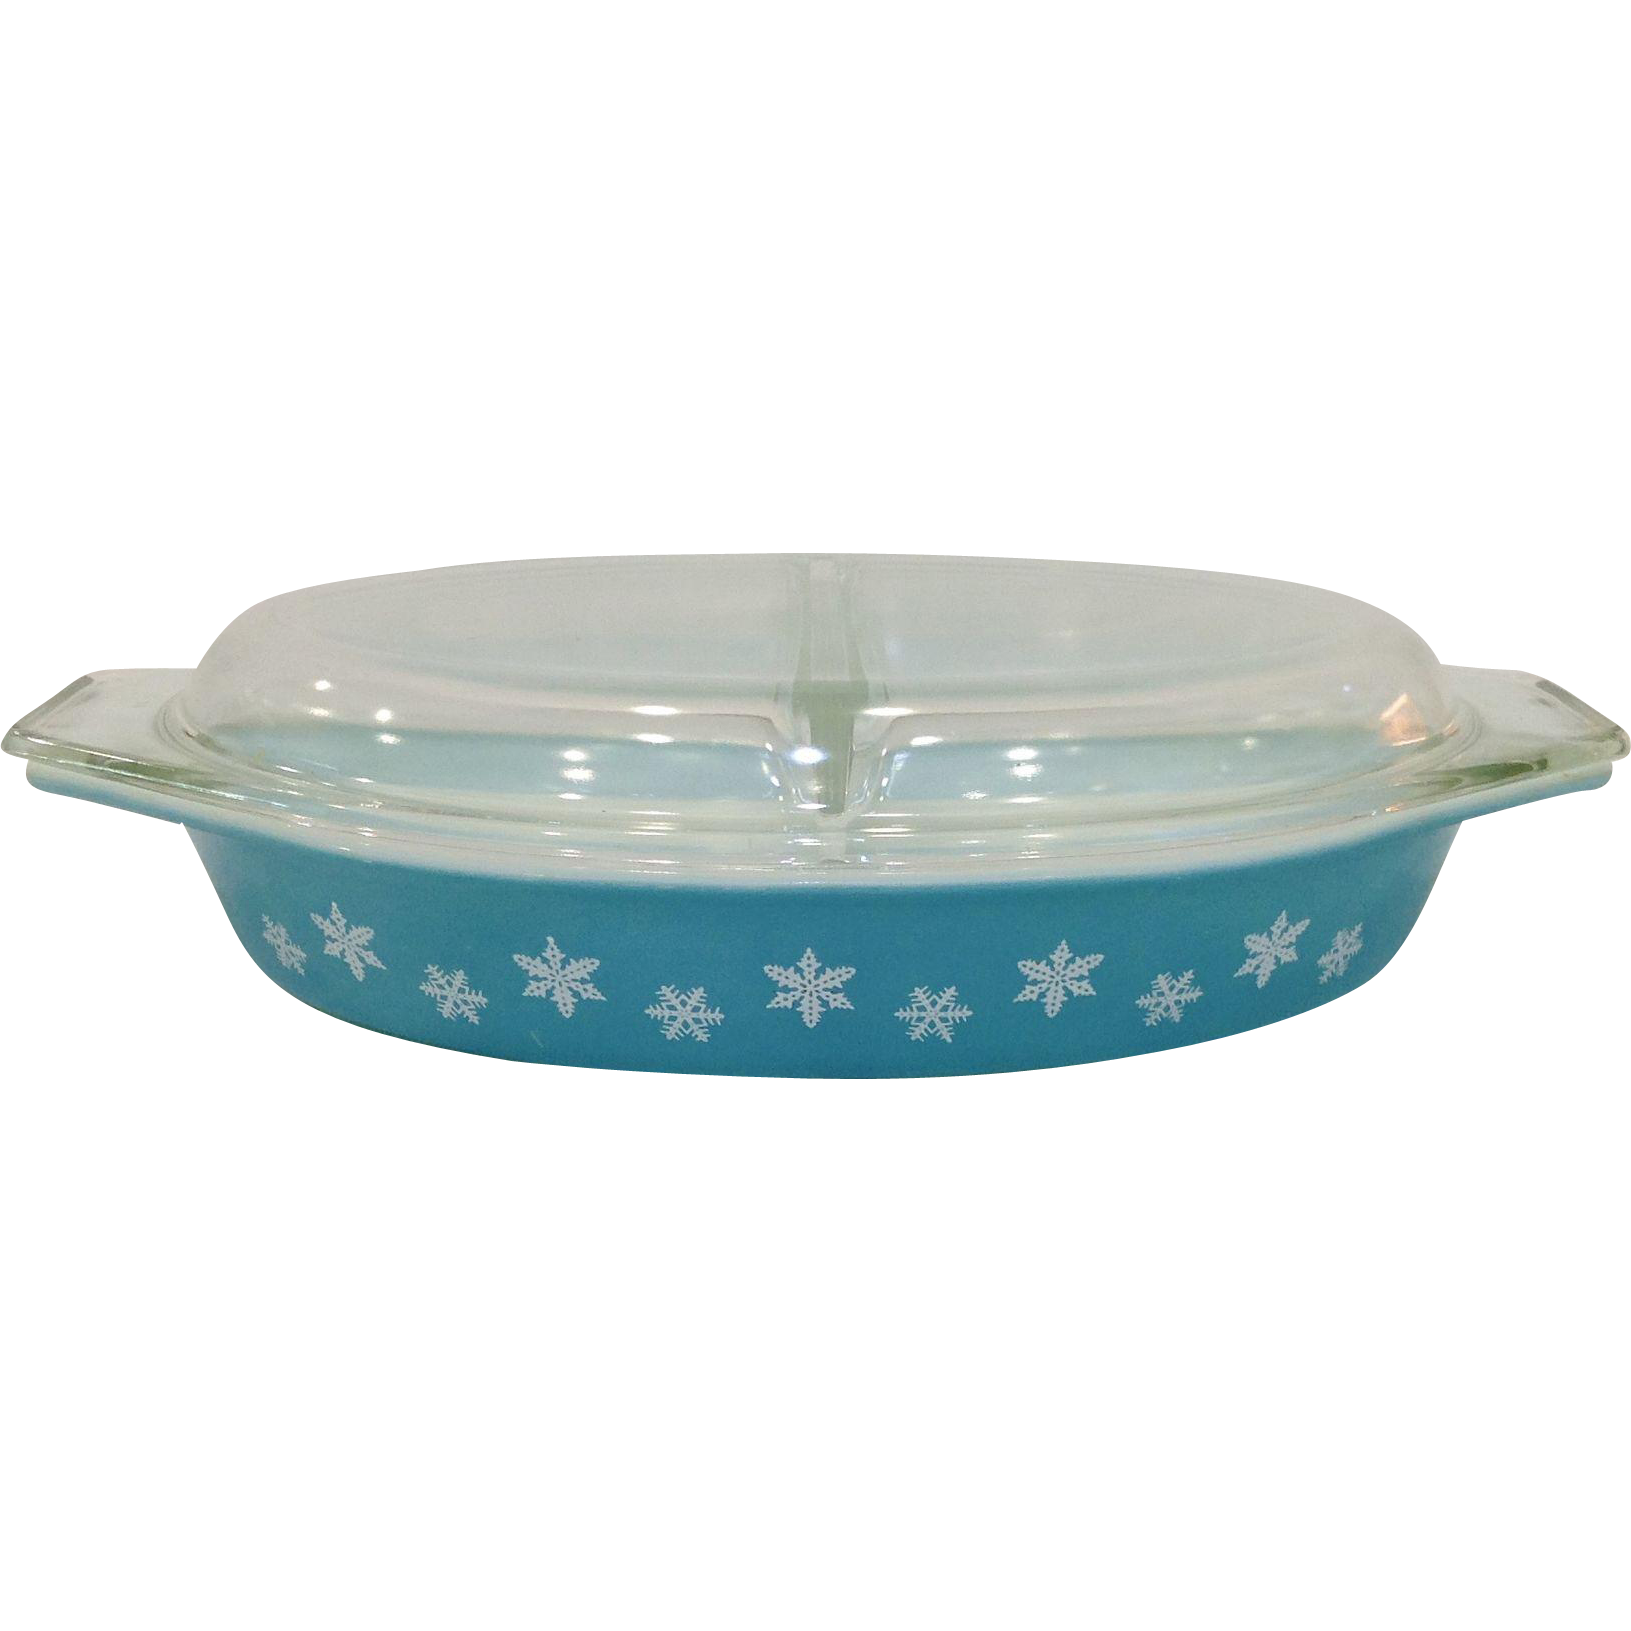 1950's Pyrex Snowflake Turquoise Divided Oval Casserole with Lid